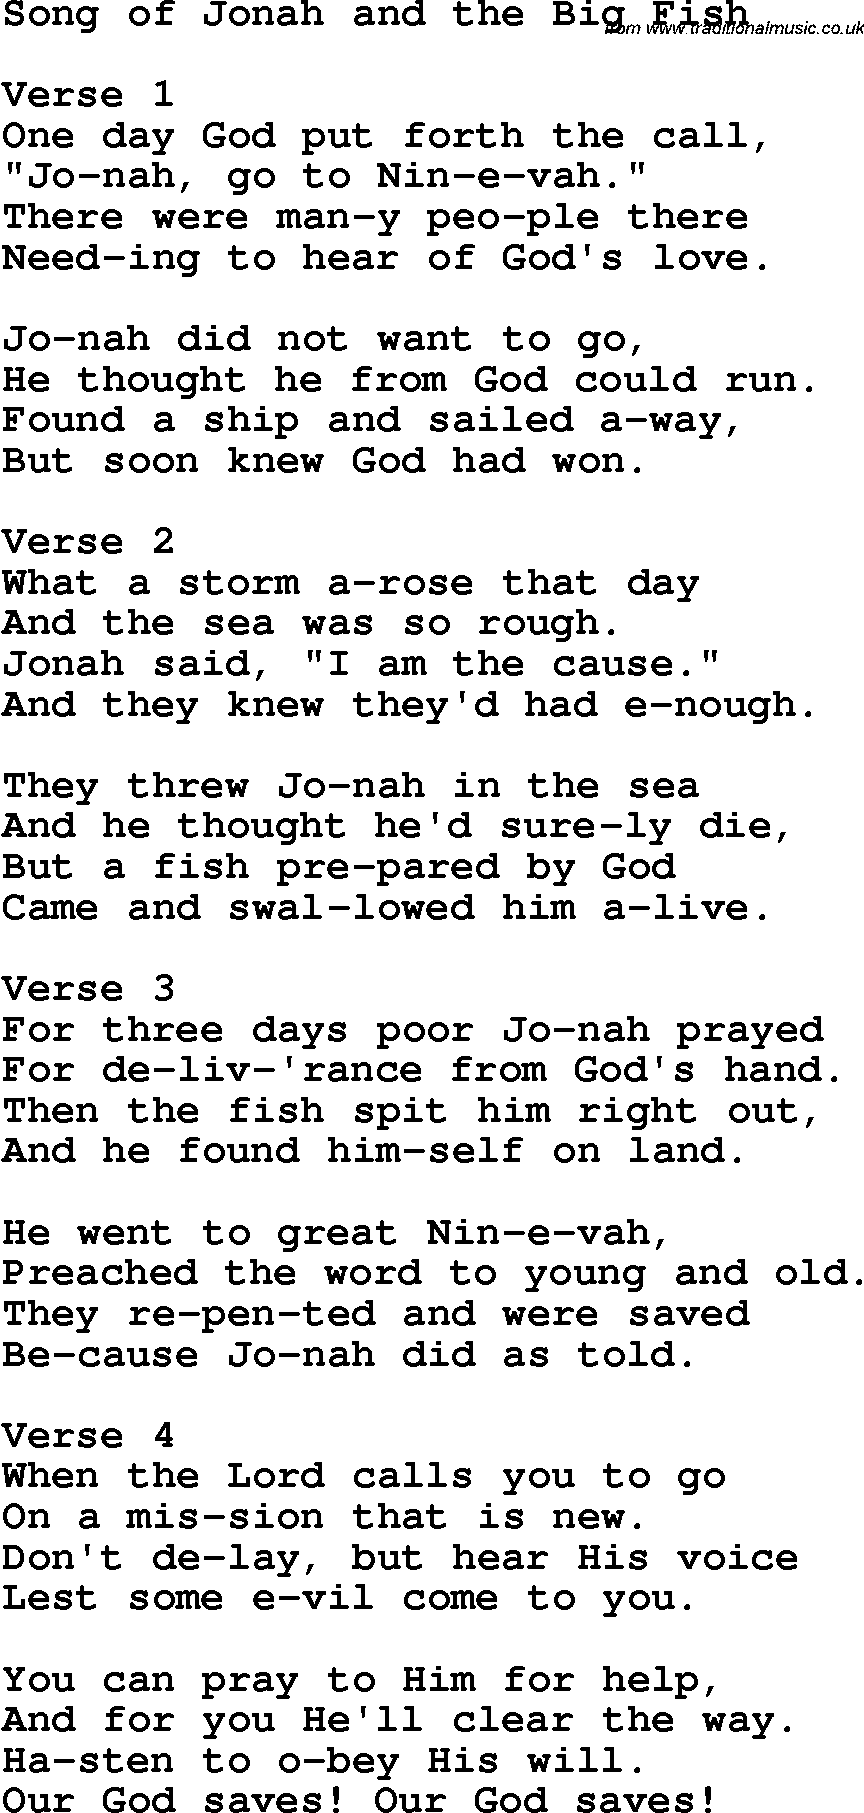 Christian childrens song song of jonah and the big fish for Fish songs for preschoolers